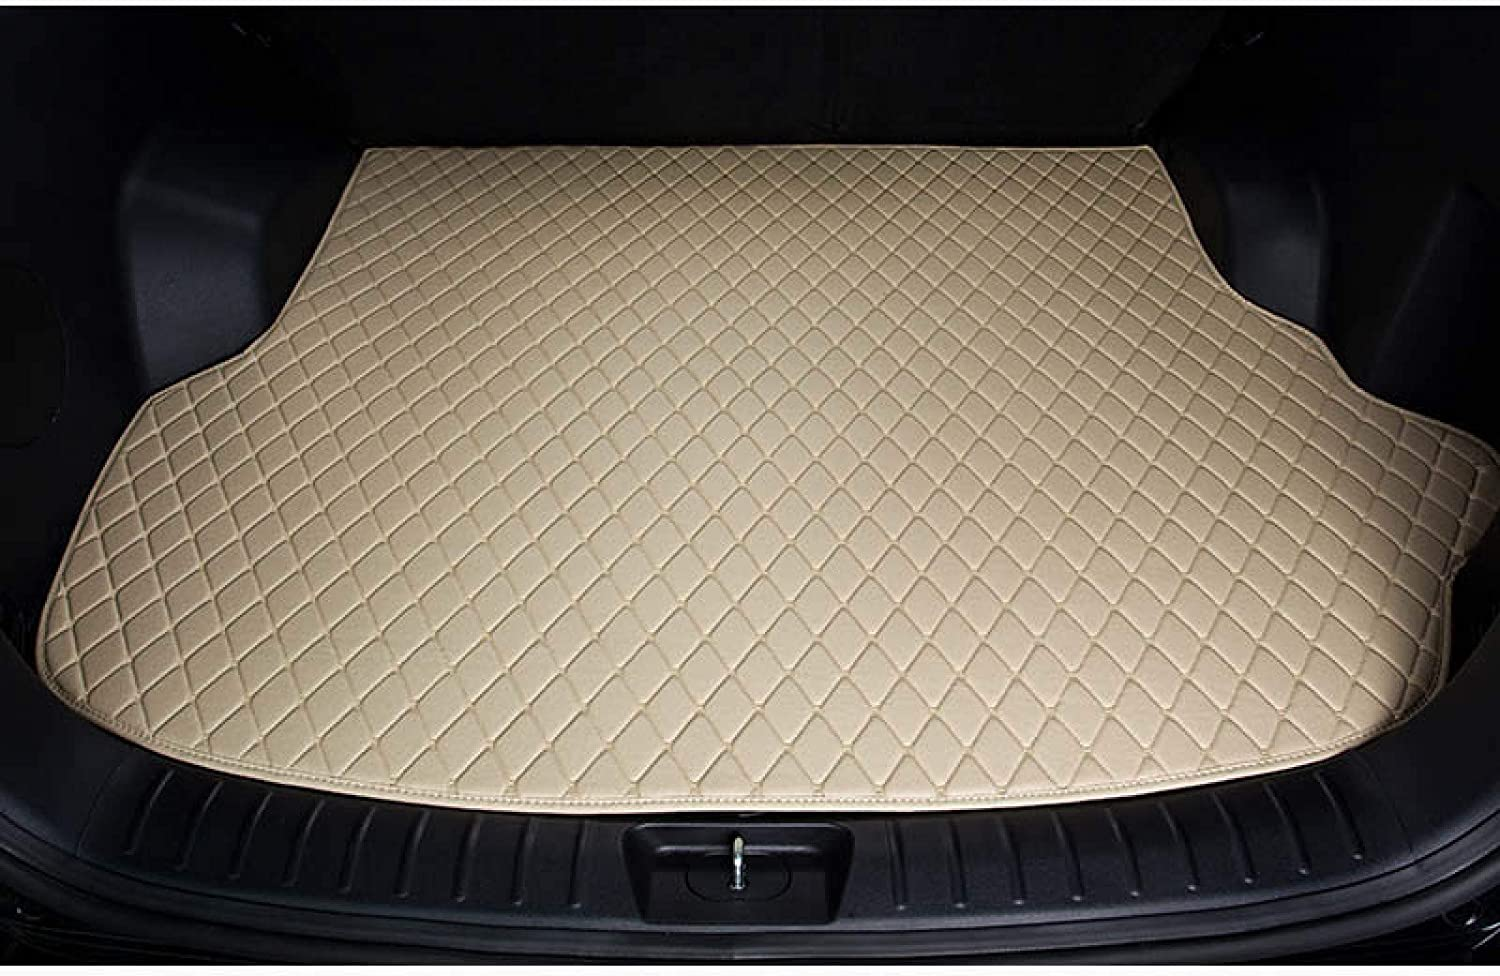 JTSGHRZ Car Trunk Albuquerque Mall Mat for R KIA NEW before selling ☆ Soprtage 2018-2019